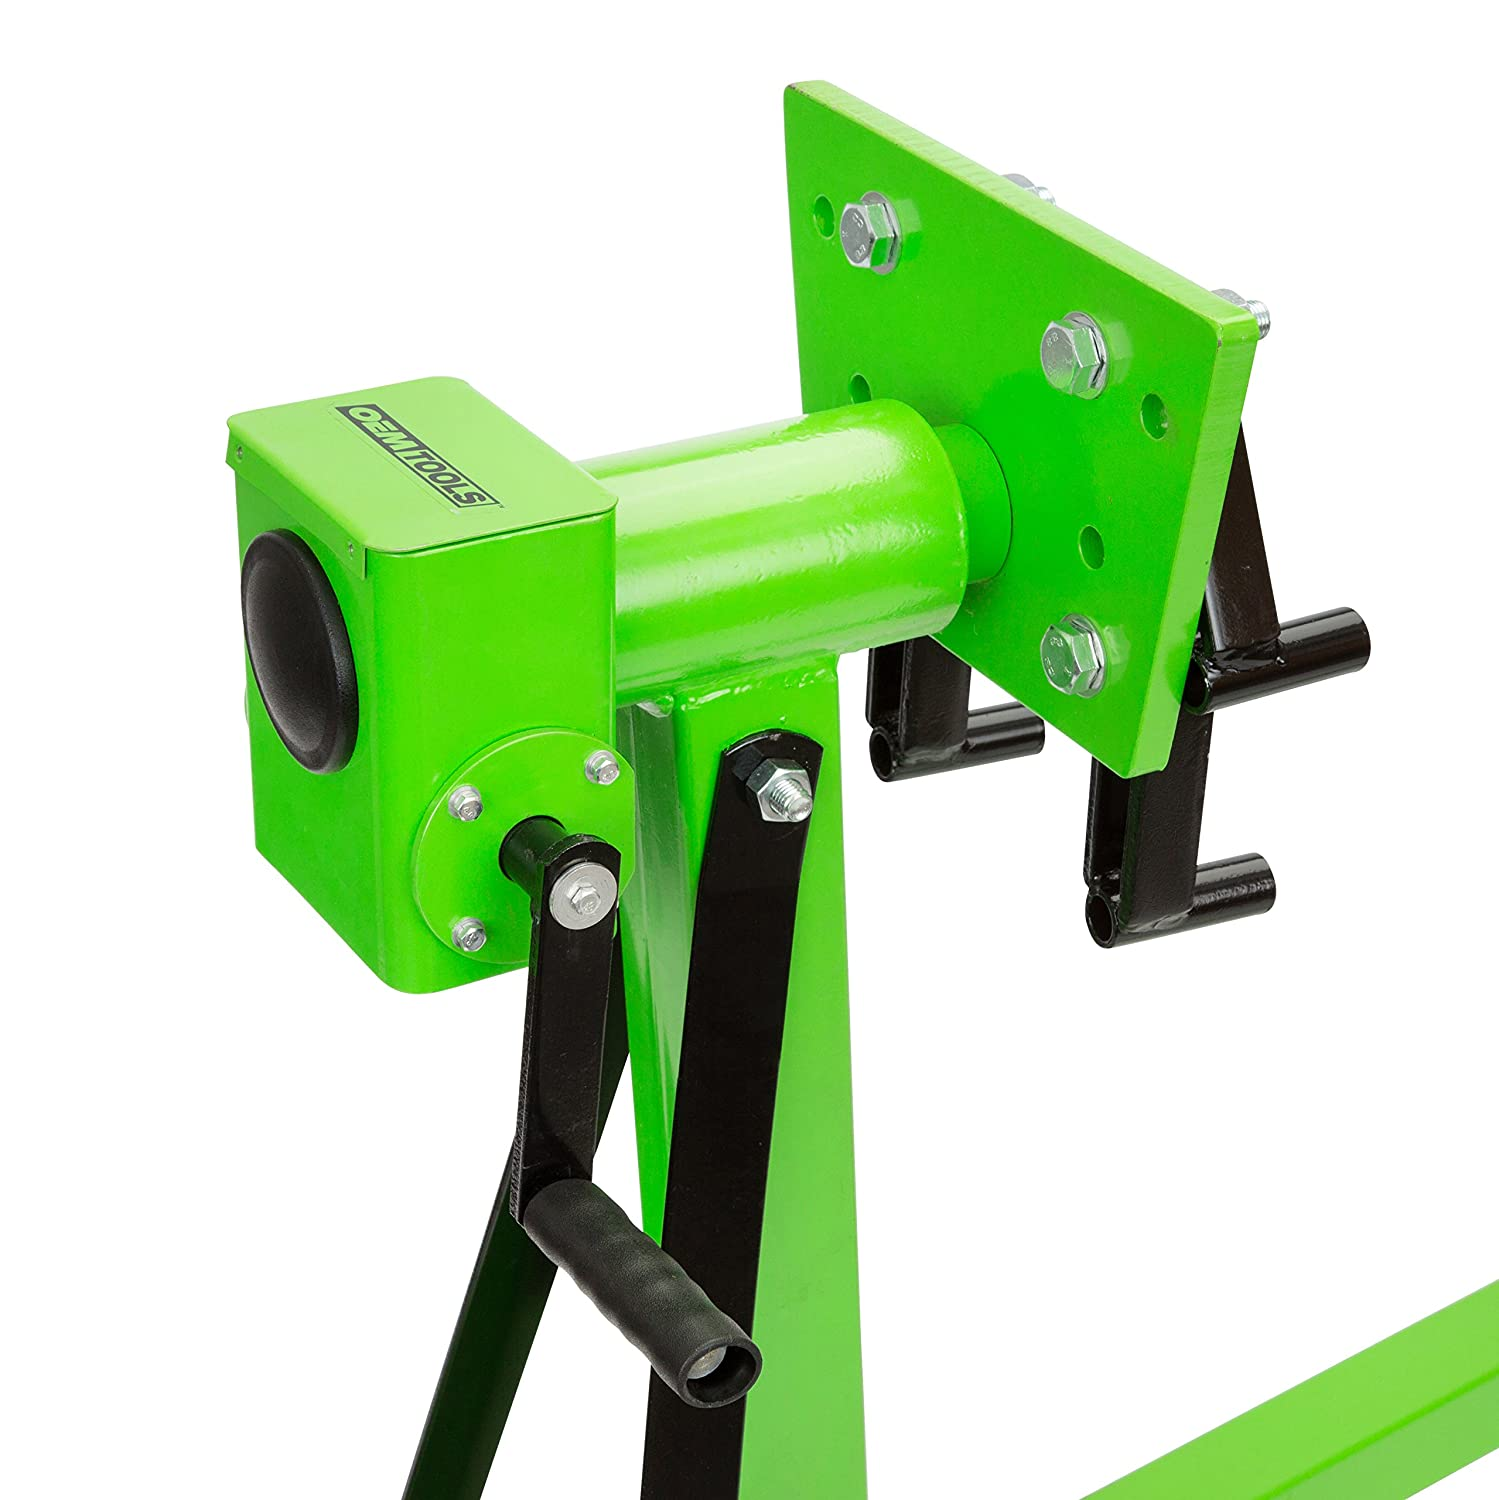 OEMTOOLS 24846 1250 Lb Rotating Engine Stand